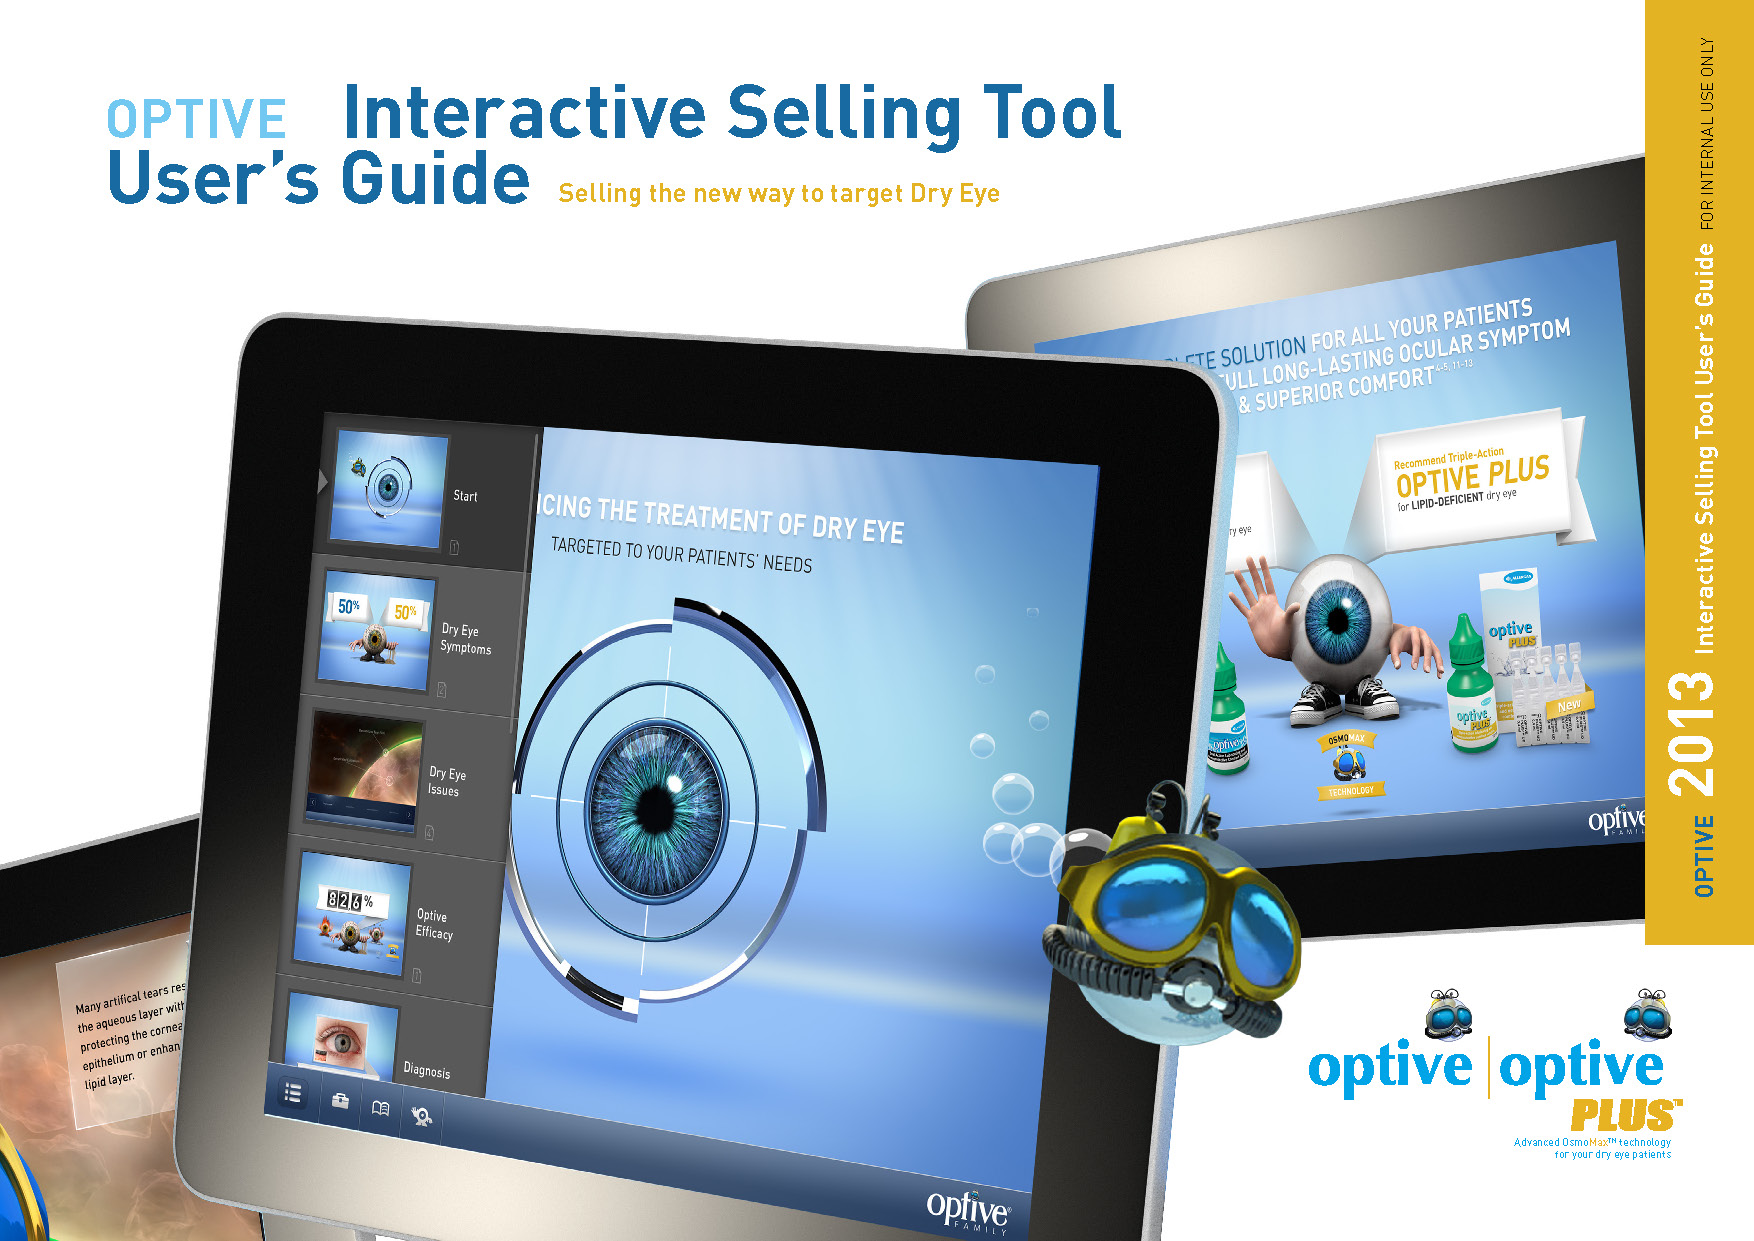 Optive Interactive Selling Tool User's Guide PDF